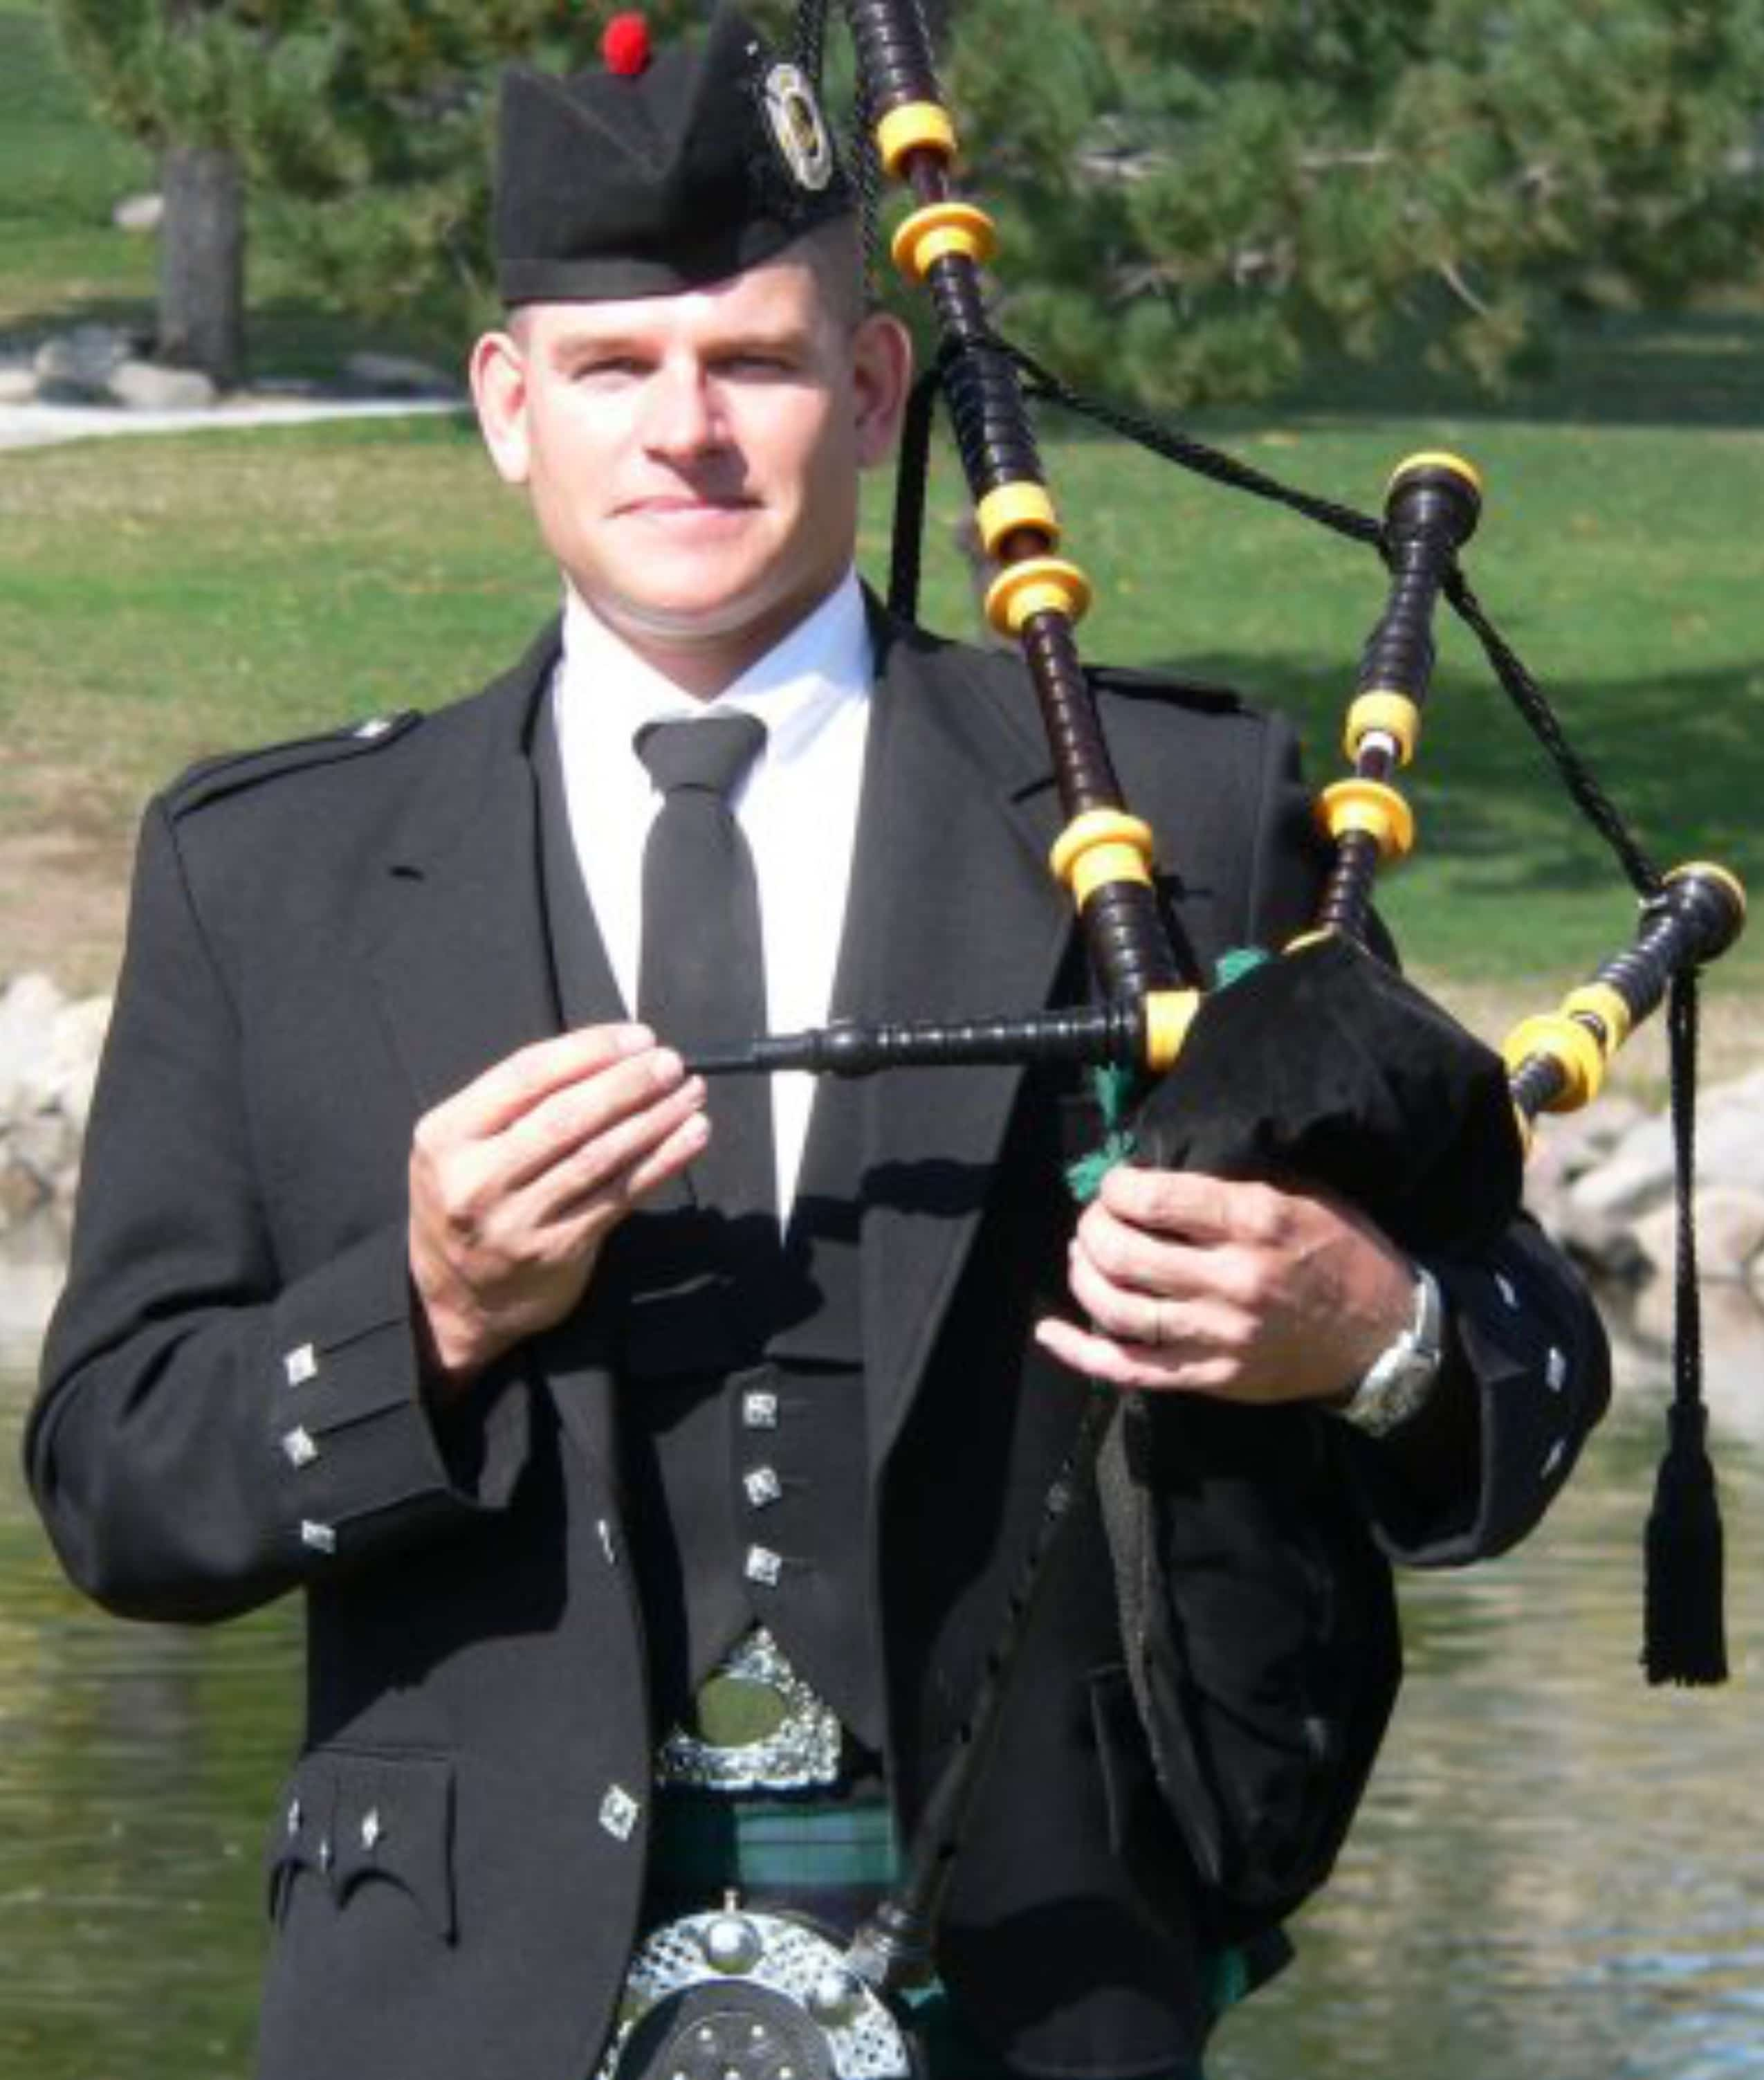 Michael Connell has been playing the bagpipe since 1998.